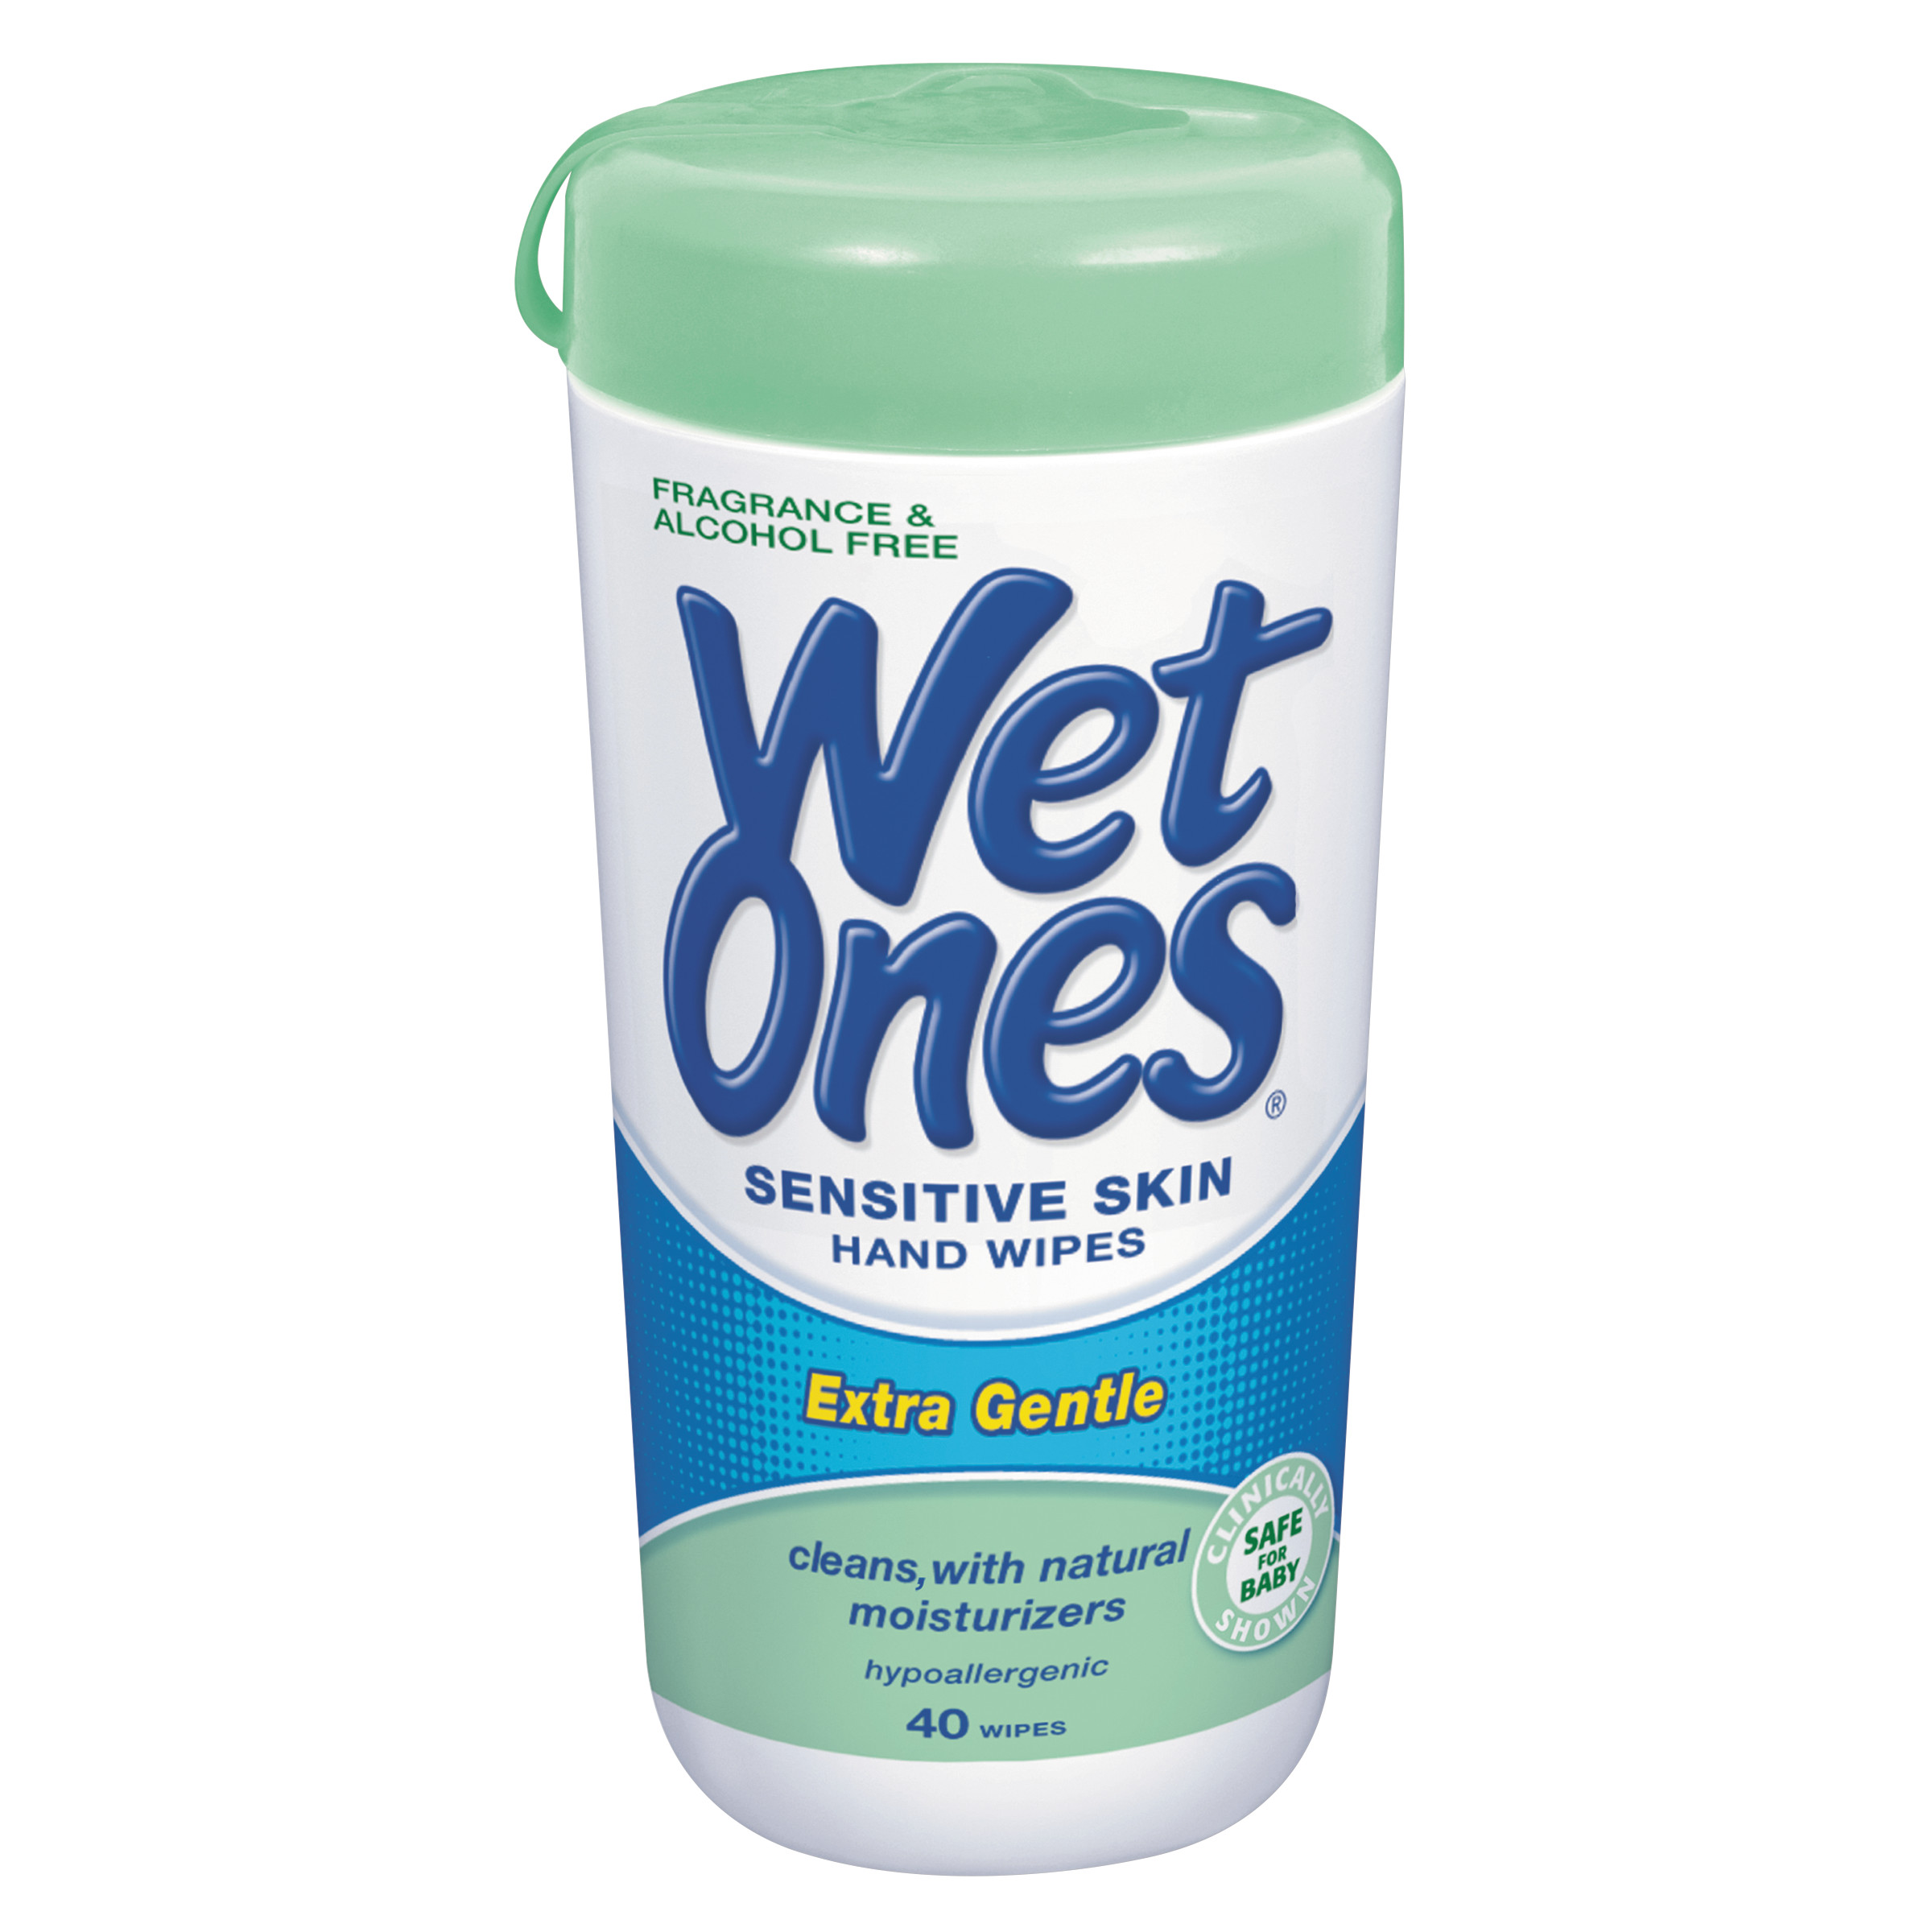 Wet Ones Sensitive Skin Hand Wipes Canister - 40 Count